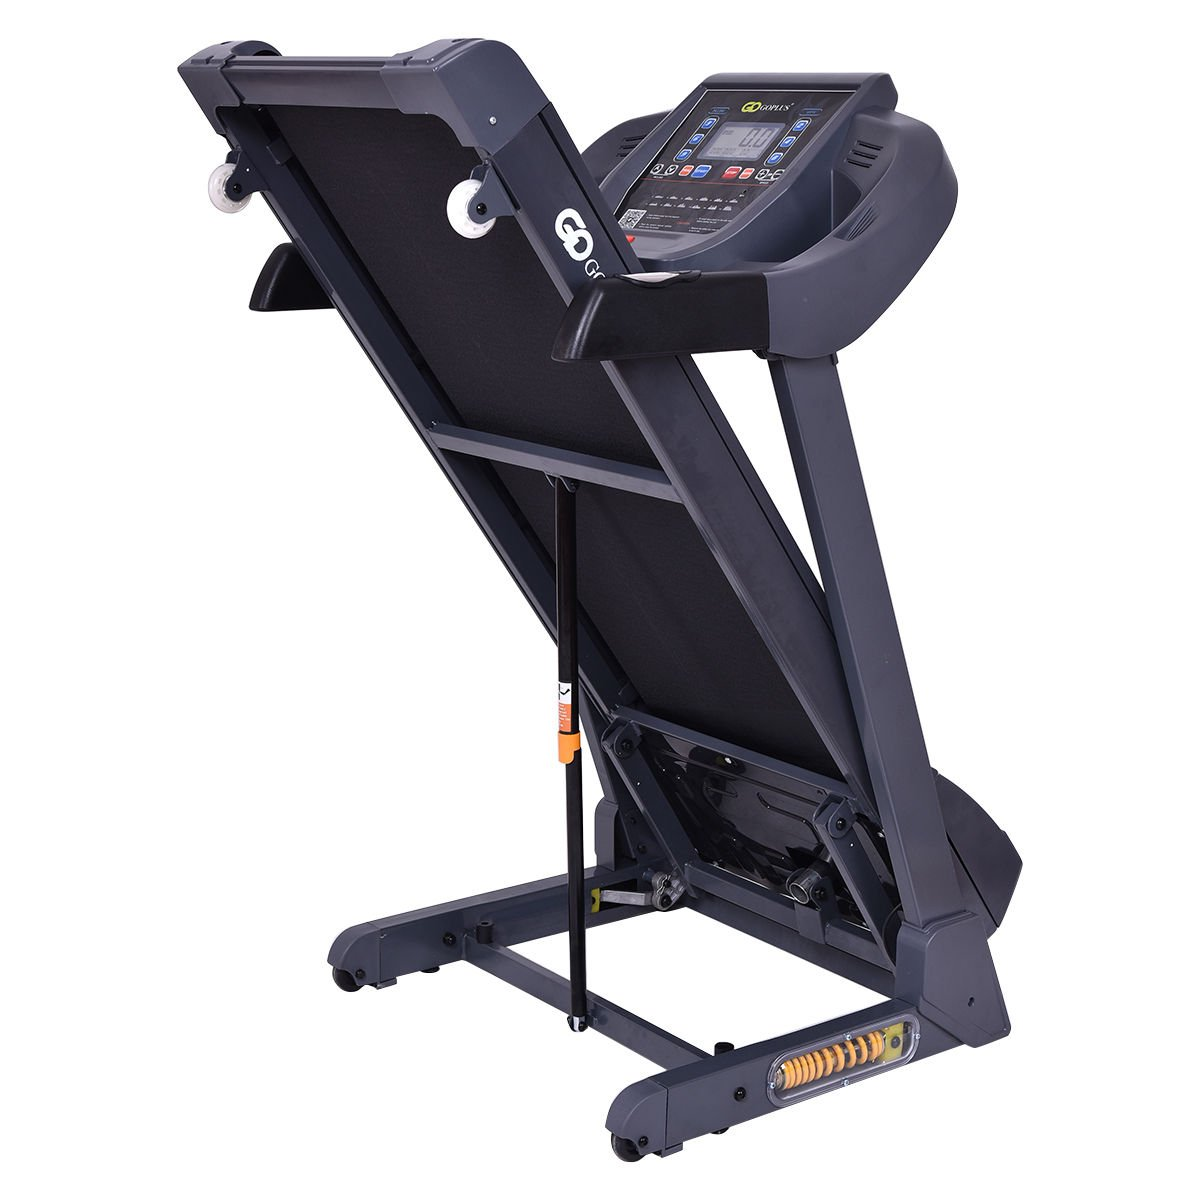 Goplus 2.5HP Folding Treadmill Electric Support Motorized Power Running Fitness Jogging Incline Machine W/APP Control & Shock-Absorption System (New Model) by Goplus (Image #5)